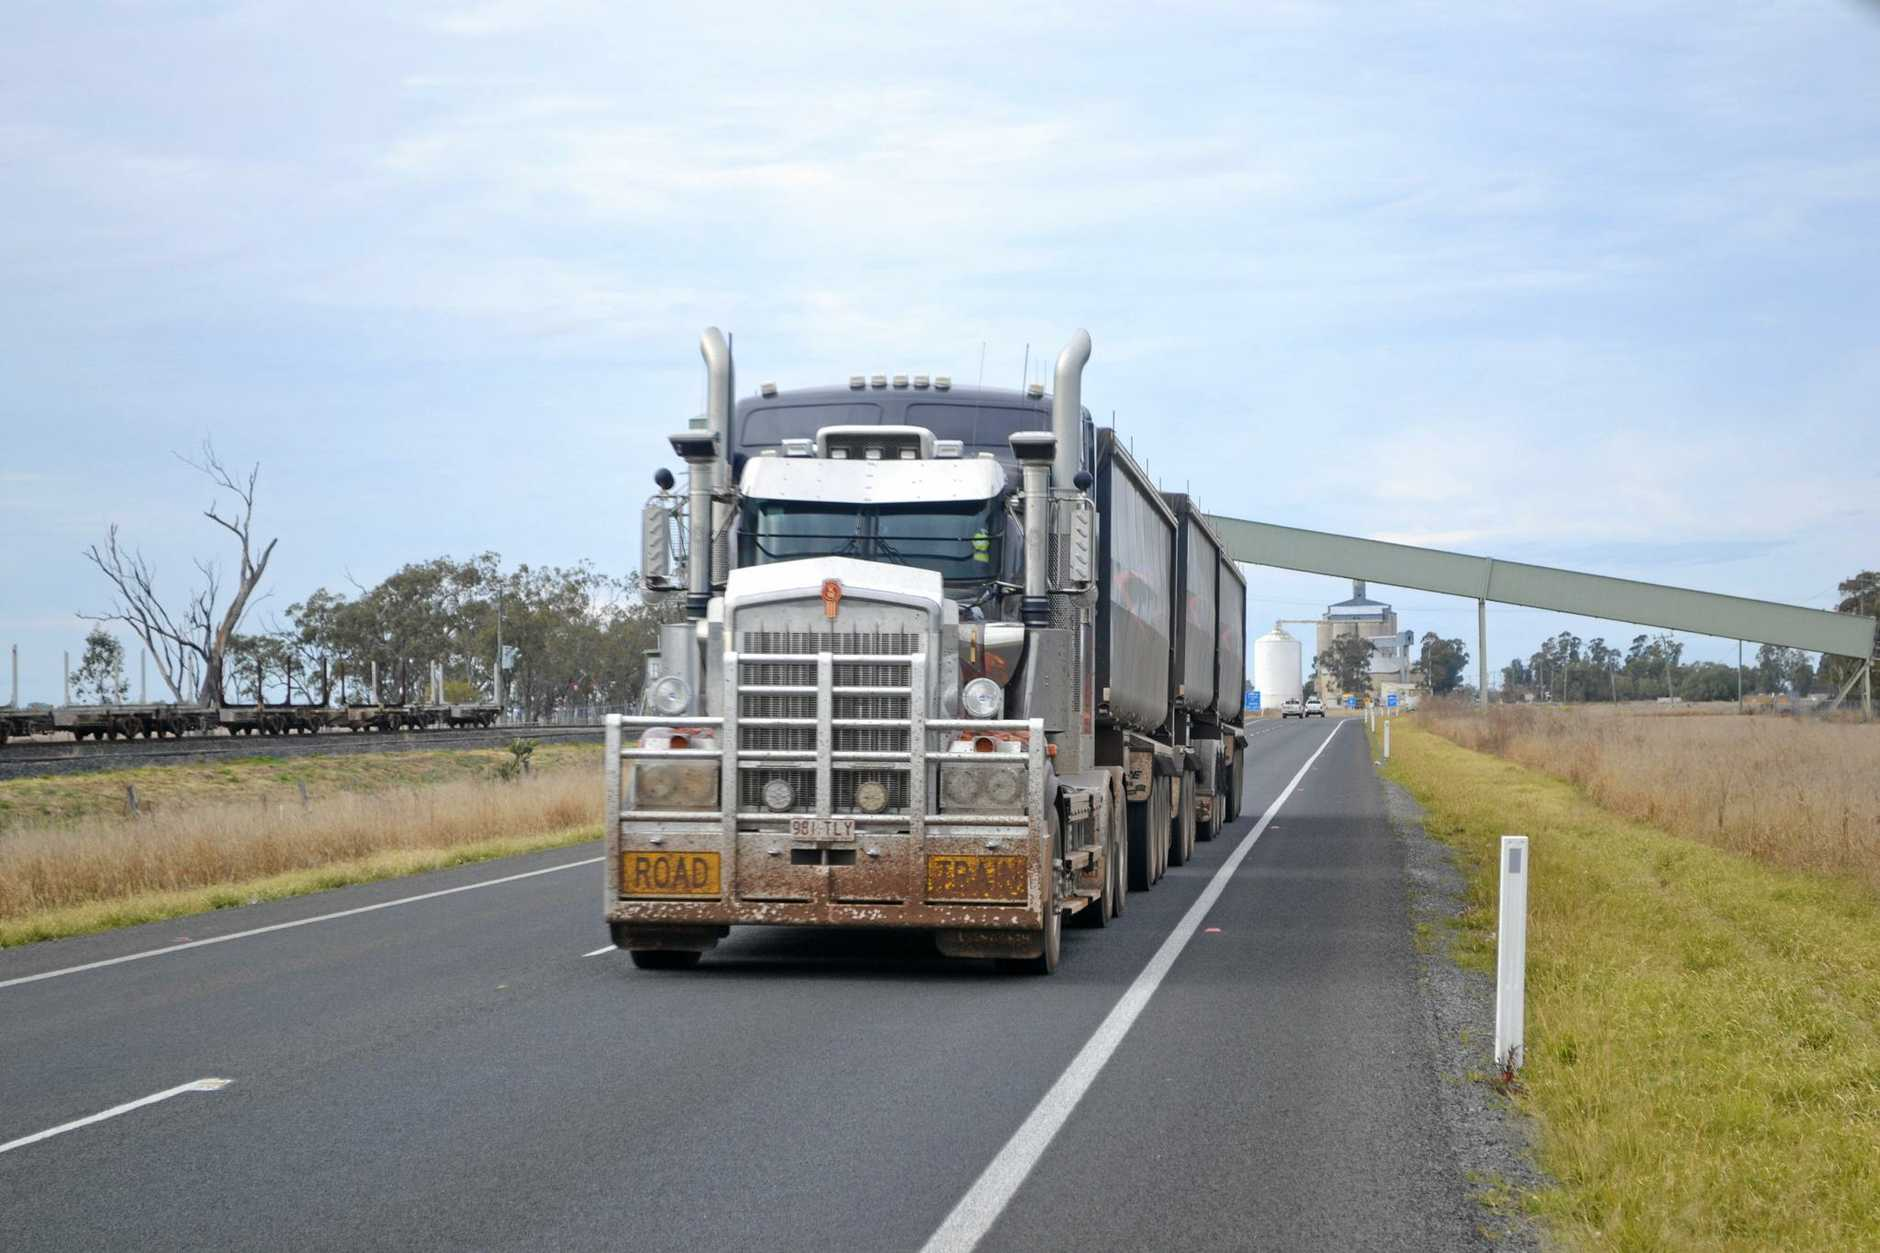 Funding under the Western Brisbane Transport Network is allocated to